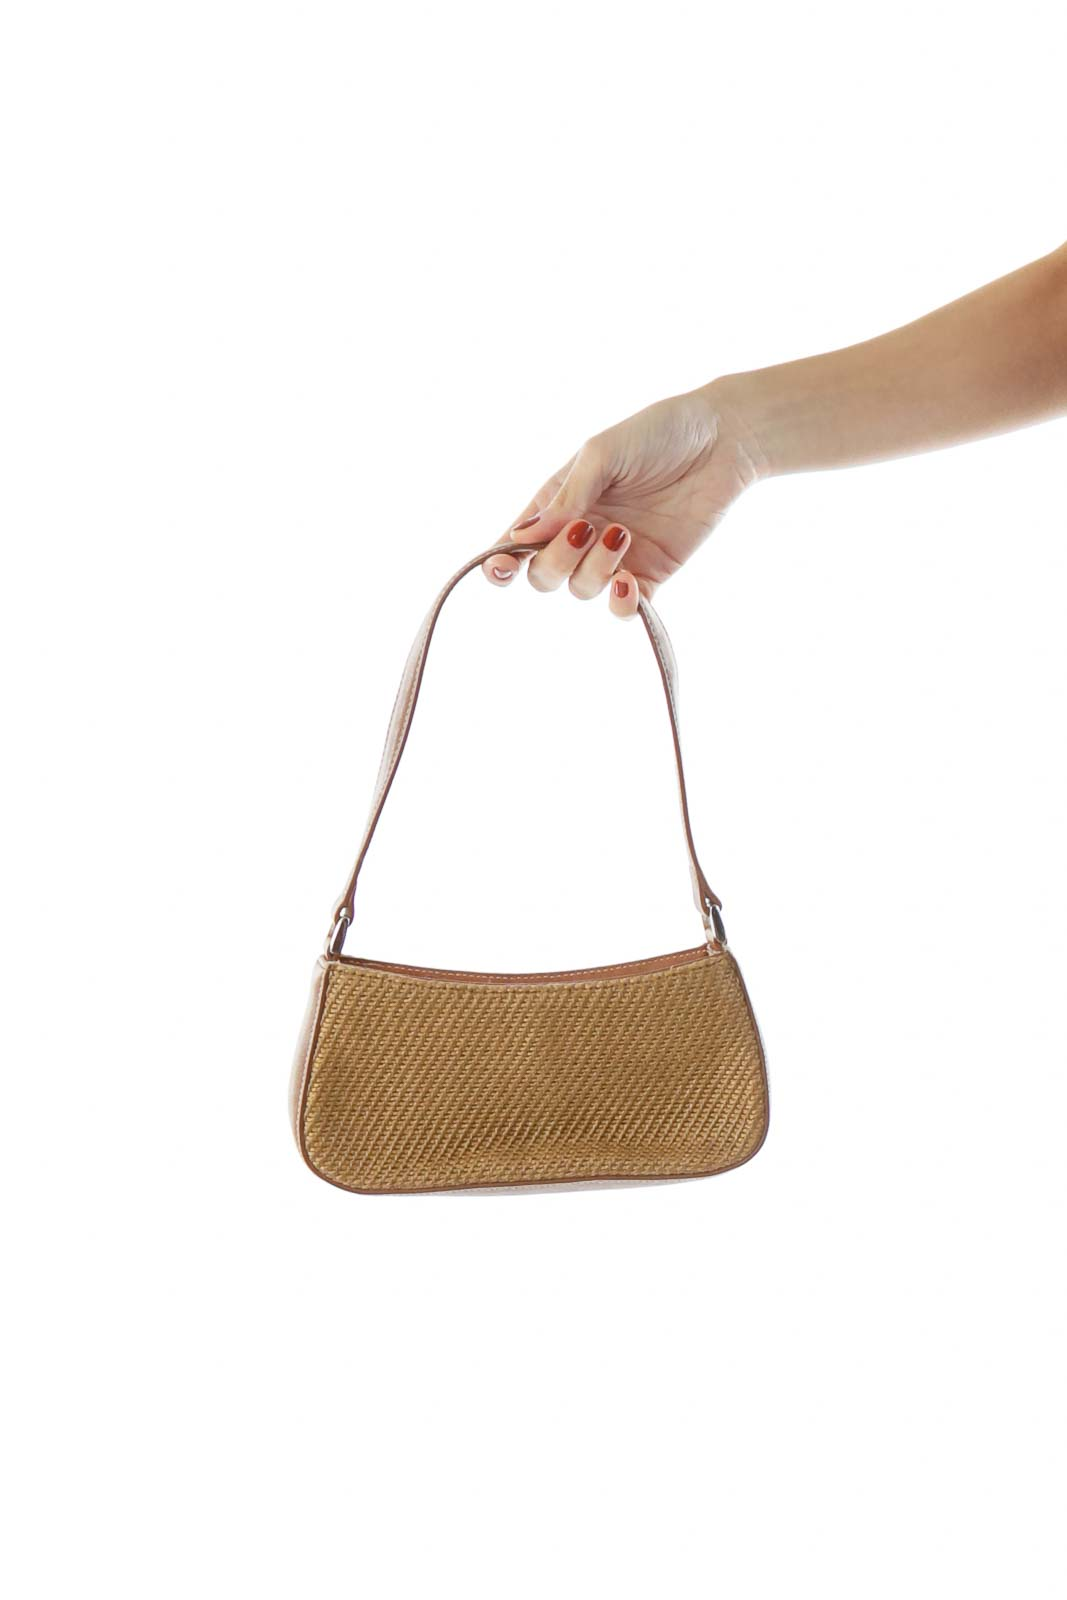 Small Brown Woven Shoulder Purse